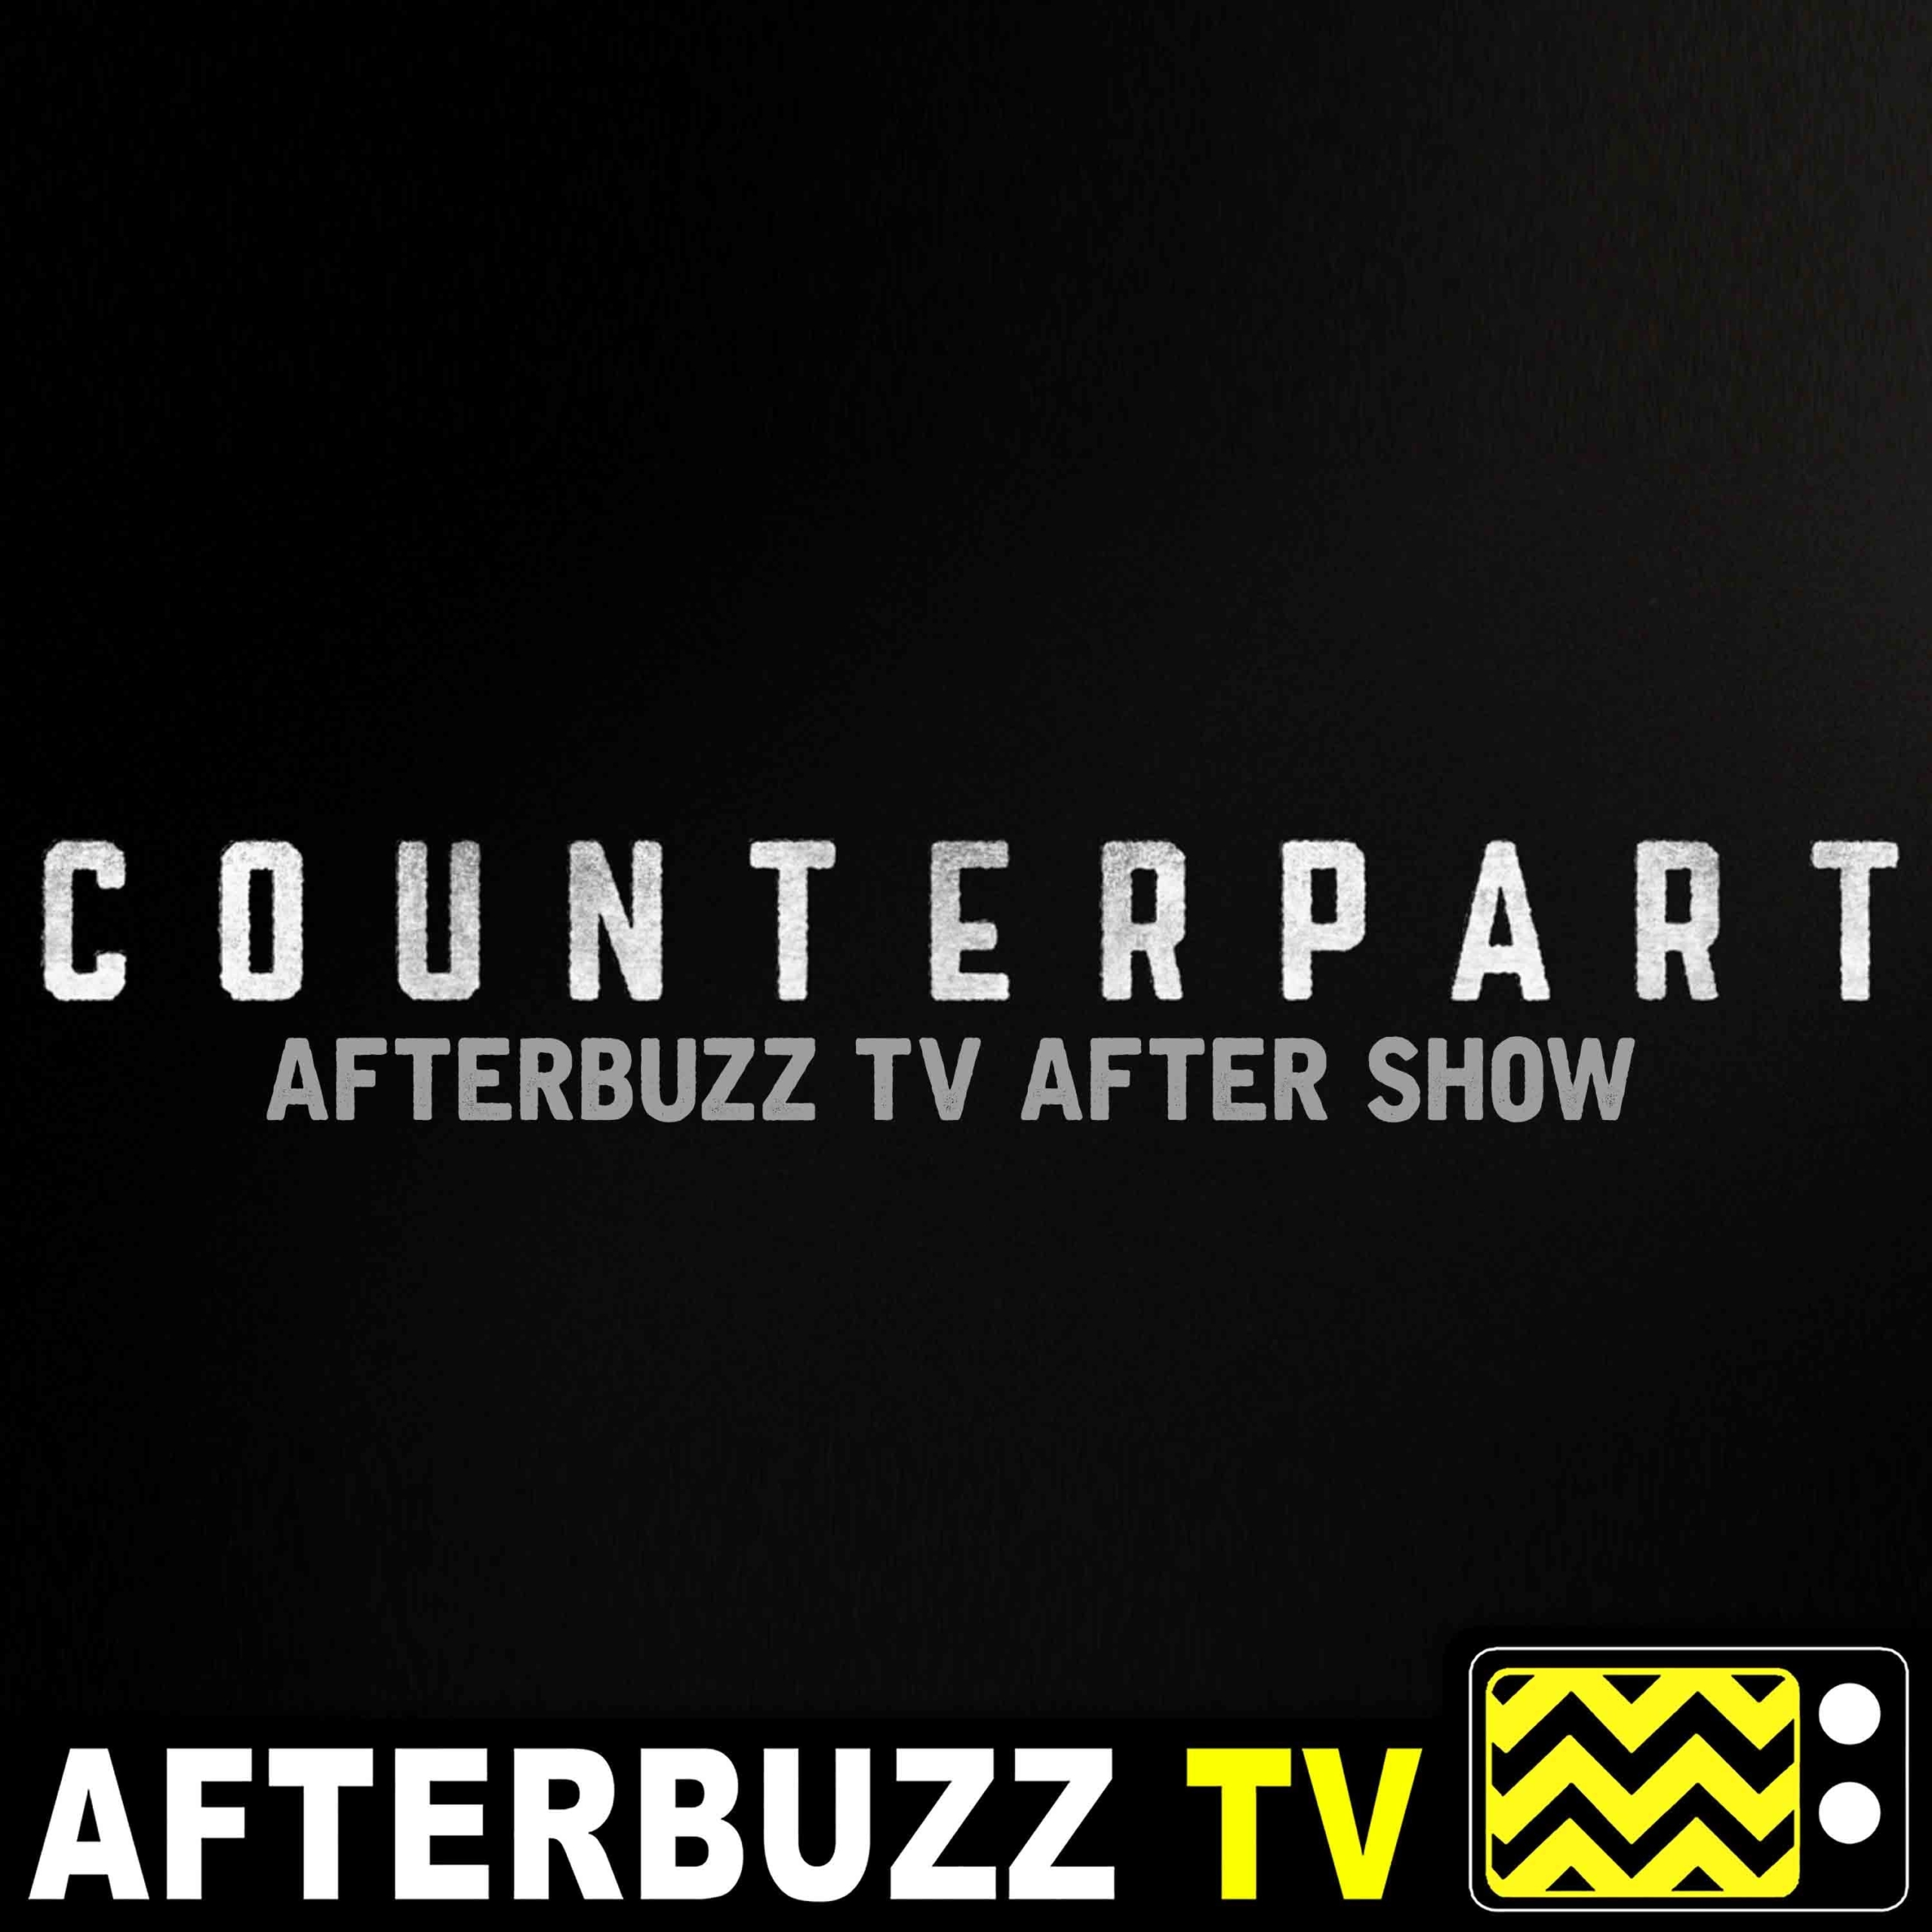 Counterpart S:1 | No Man's Land, Part One E:9 | AfterBuzz TV AfterShow